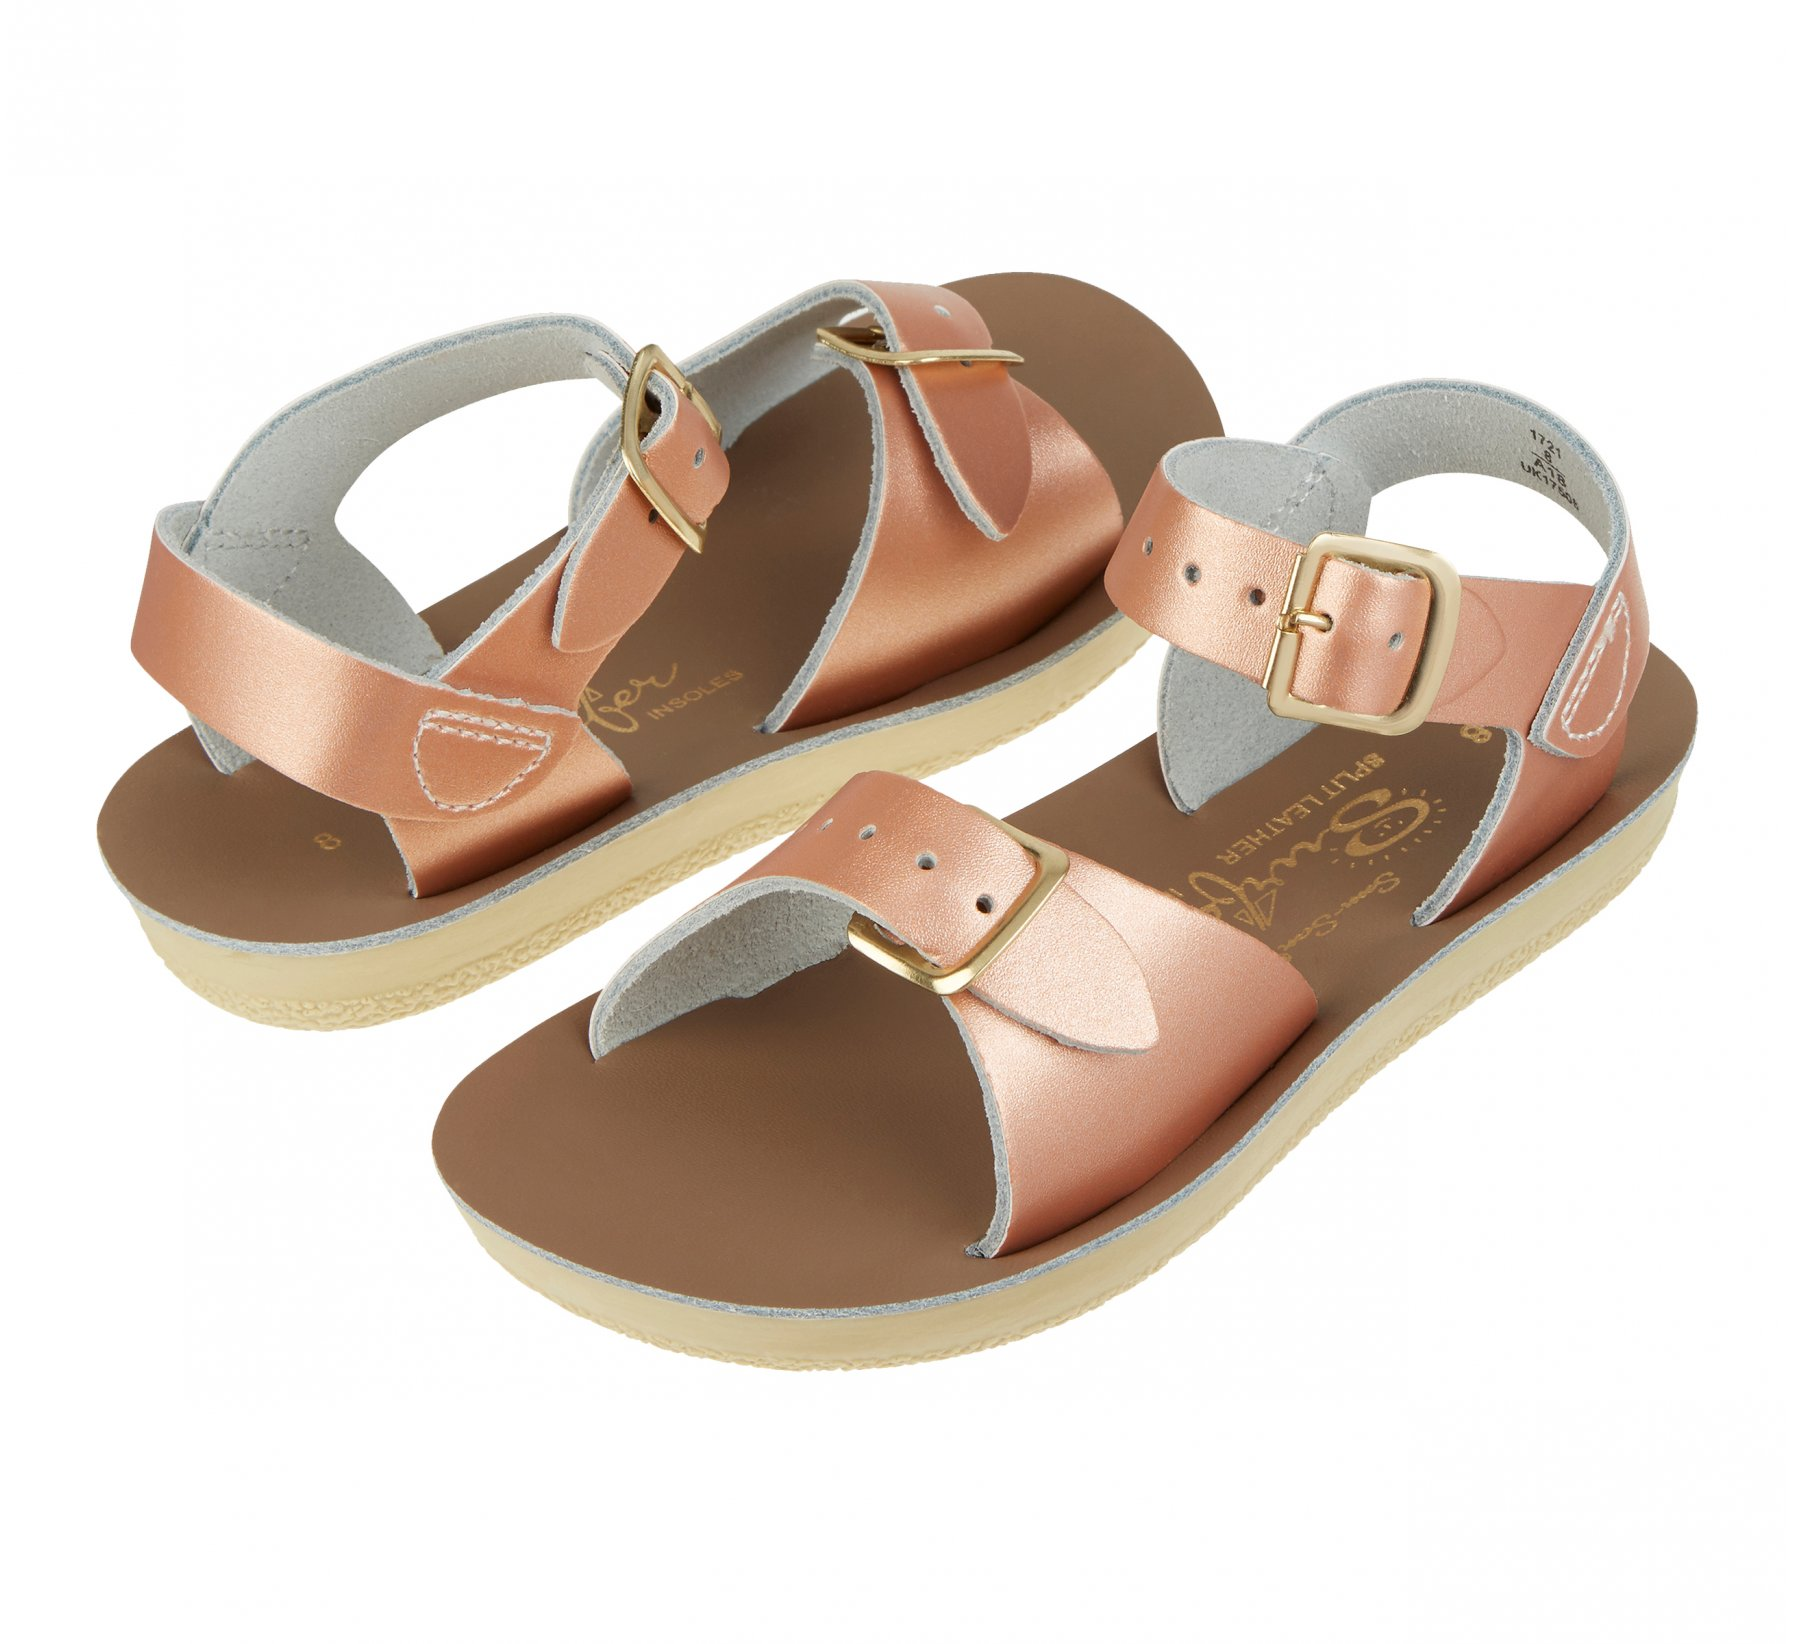 Surfer Rose Doré - Salt Water Sandals